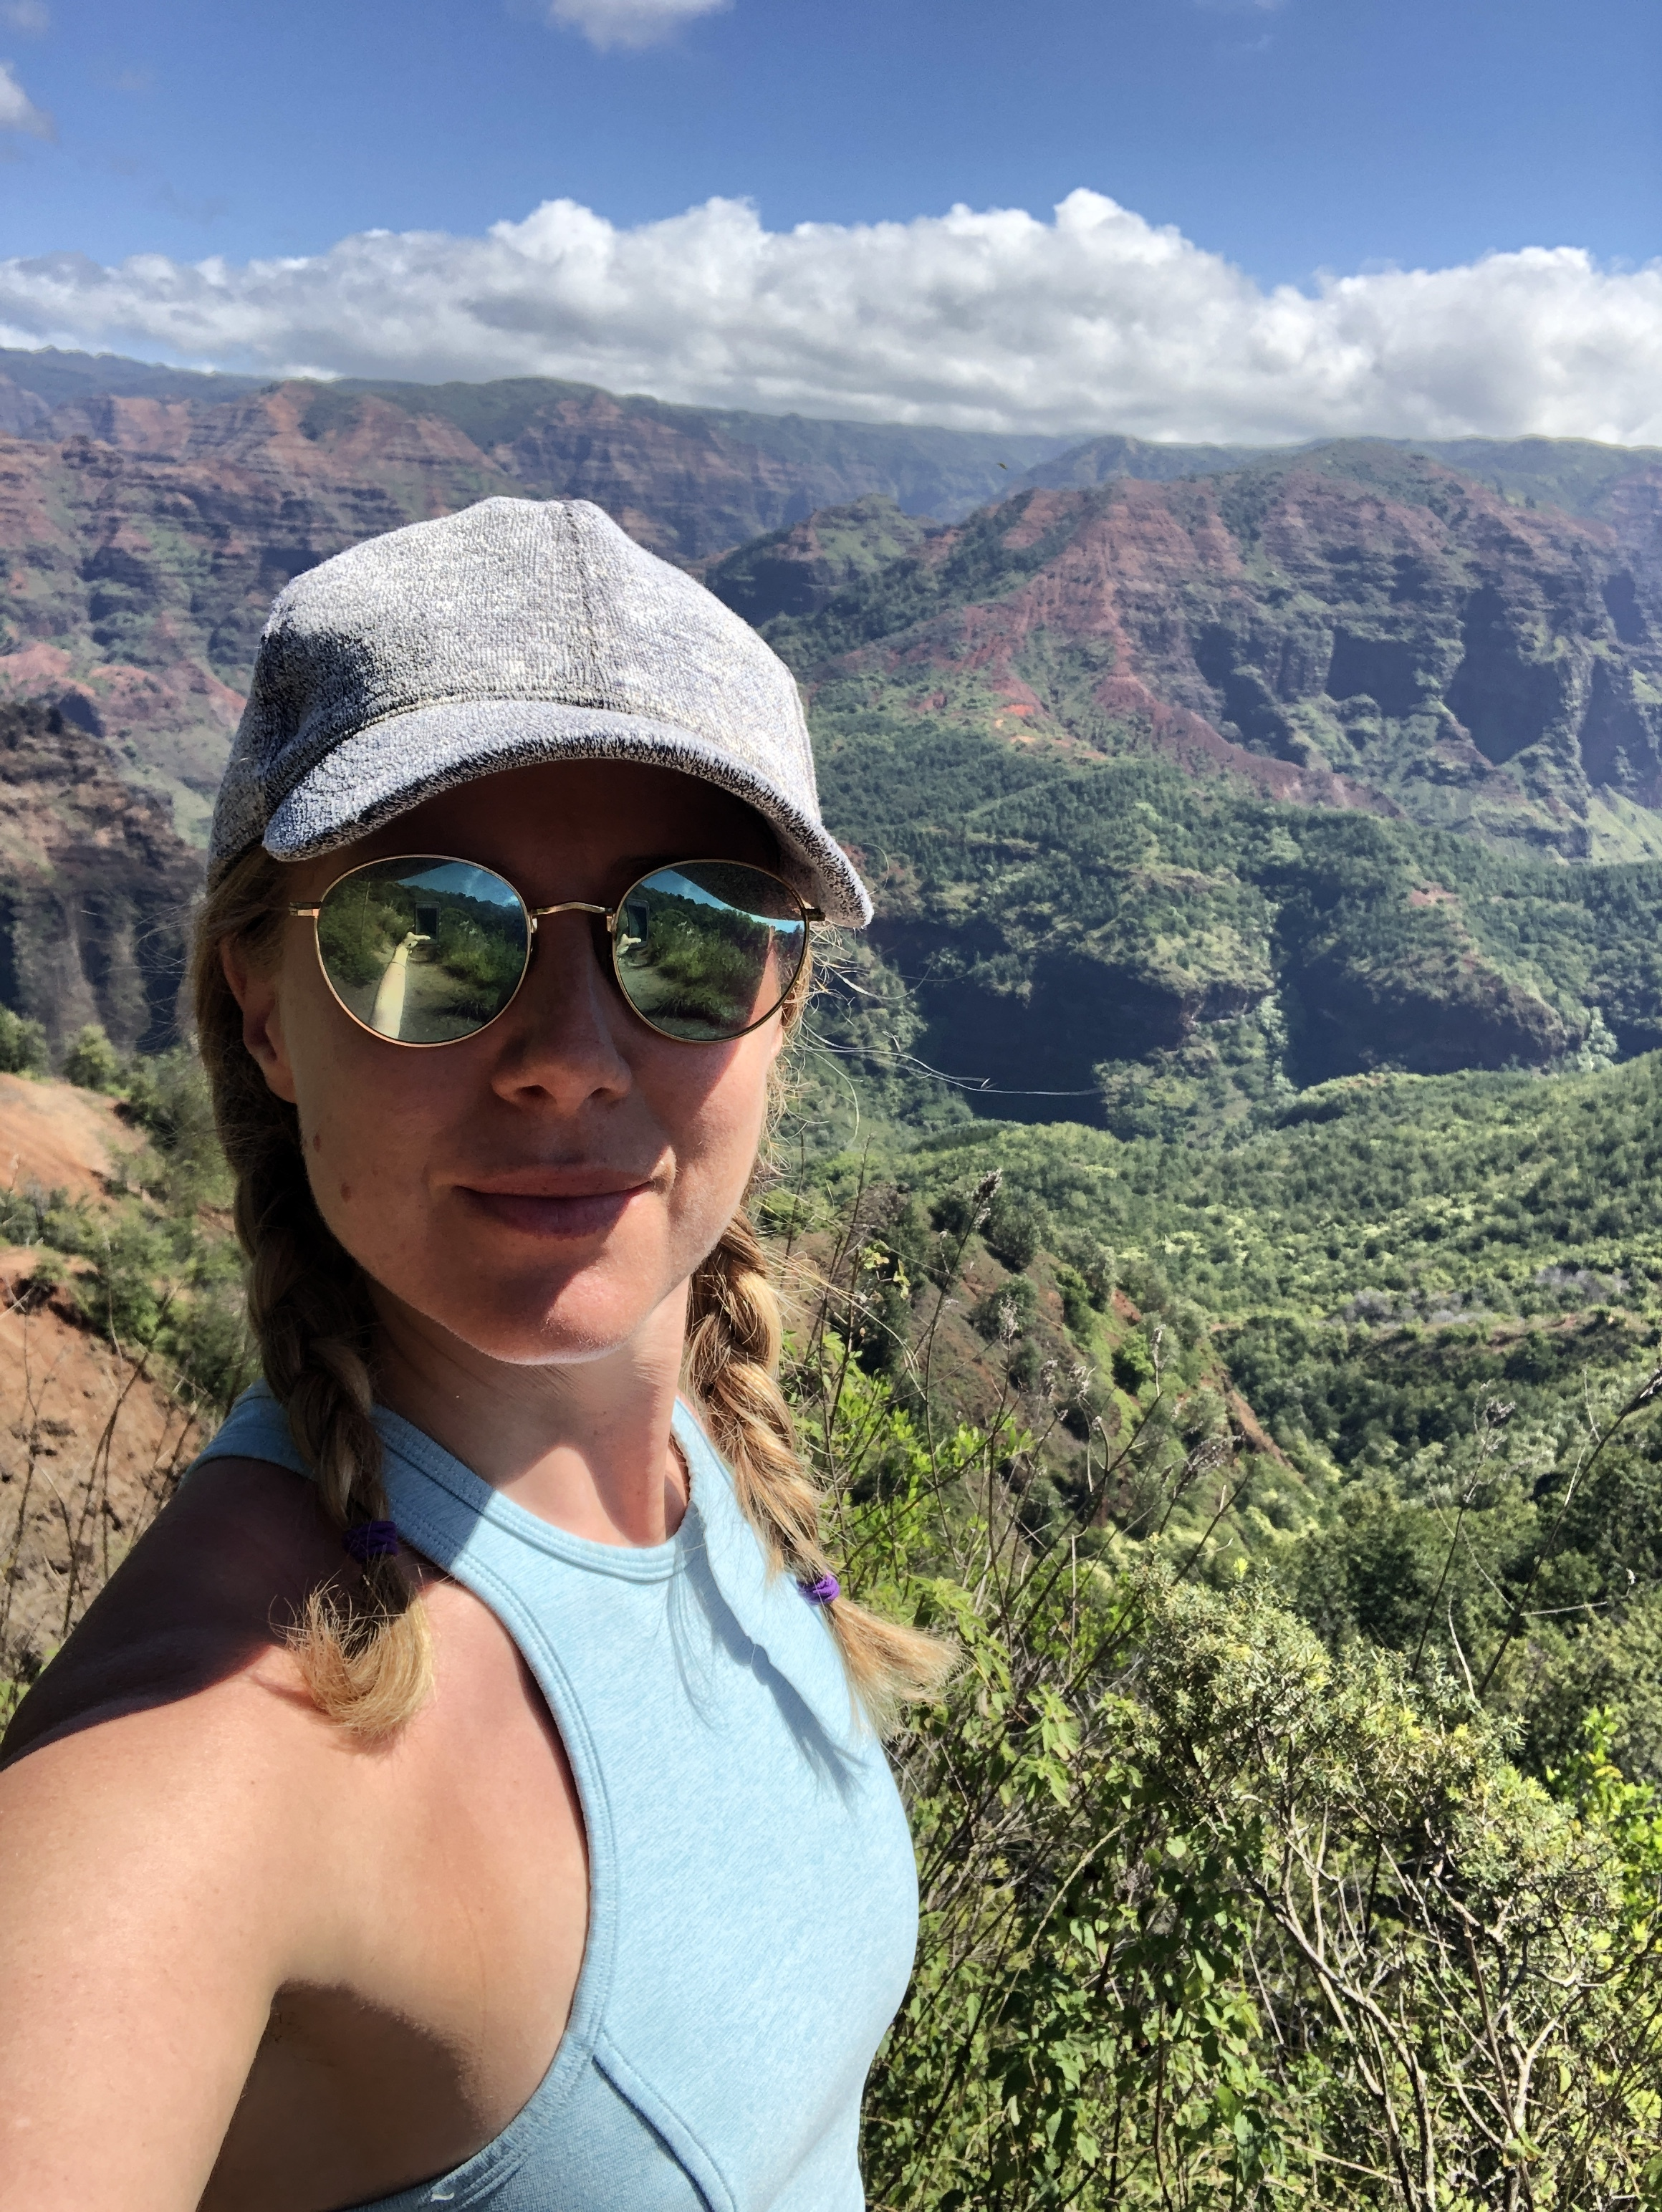 Doing my best serious selfie in Waimea Canyon, one of the most spectacular places you'll see on Kaua'i.